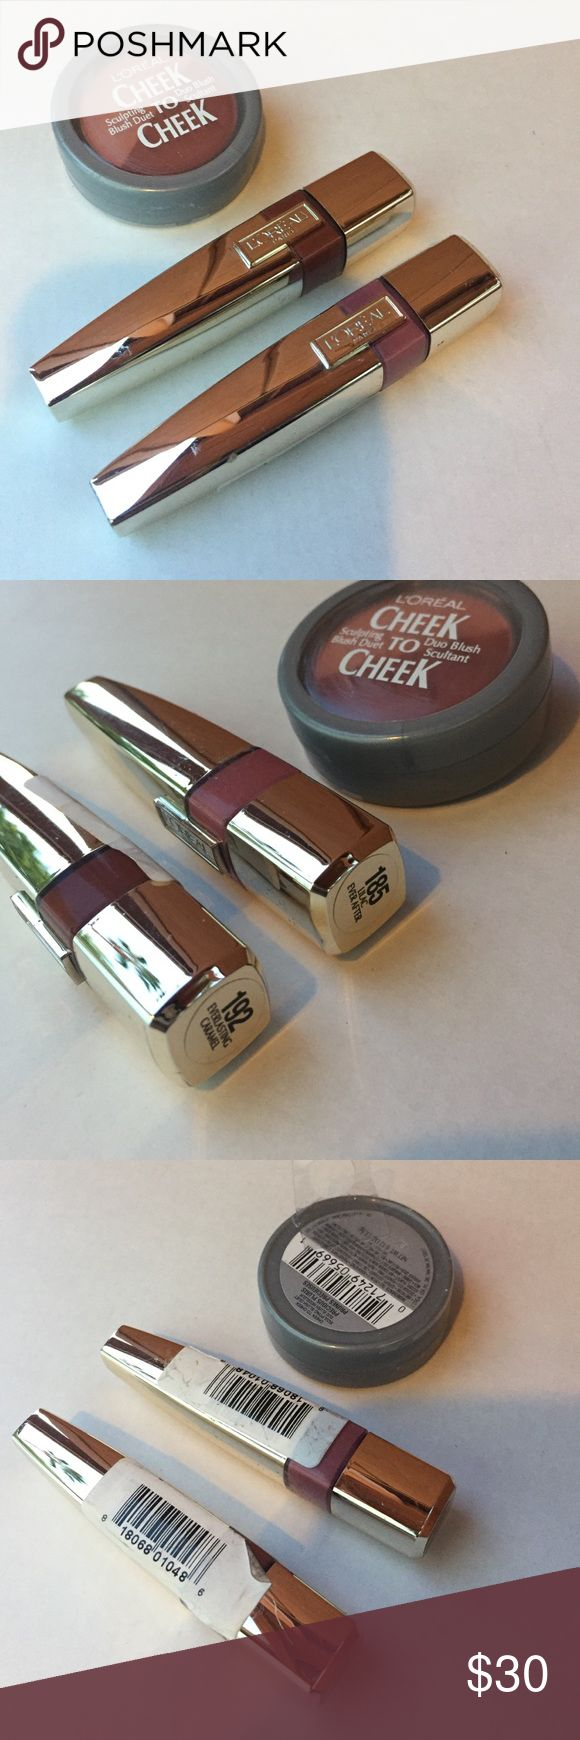 L'Oreal Lips & Face Stocking Stuffer Bundle! Full Size Brand New.  Two Gorgeous Lip Gloss Colors & complementary shades of Blush in a duo compact.  This bundle includes lip gloss number 185 in lilac ever after, lip gloss number 192 in everlasting caramel and cheek to cheek sculpting blush duet in precious plum. L'Oreal Makeup